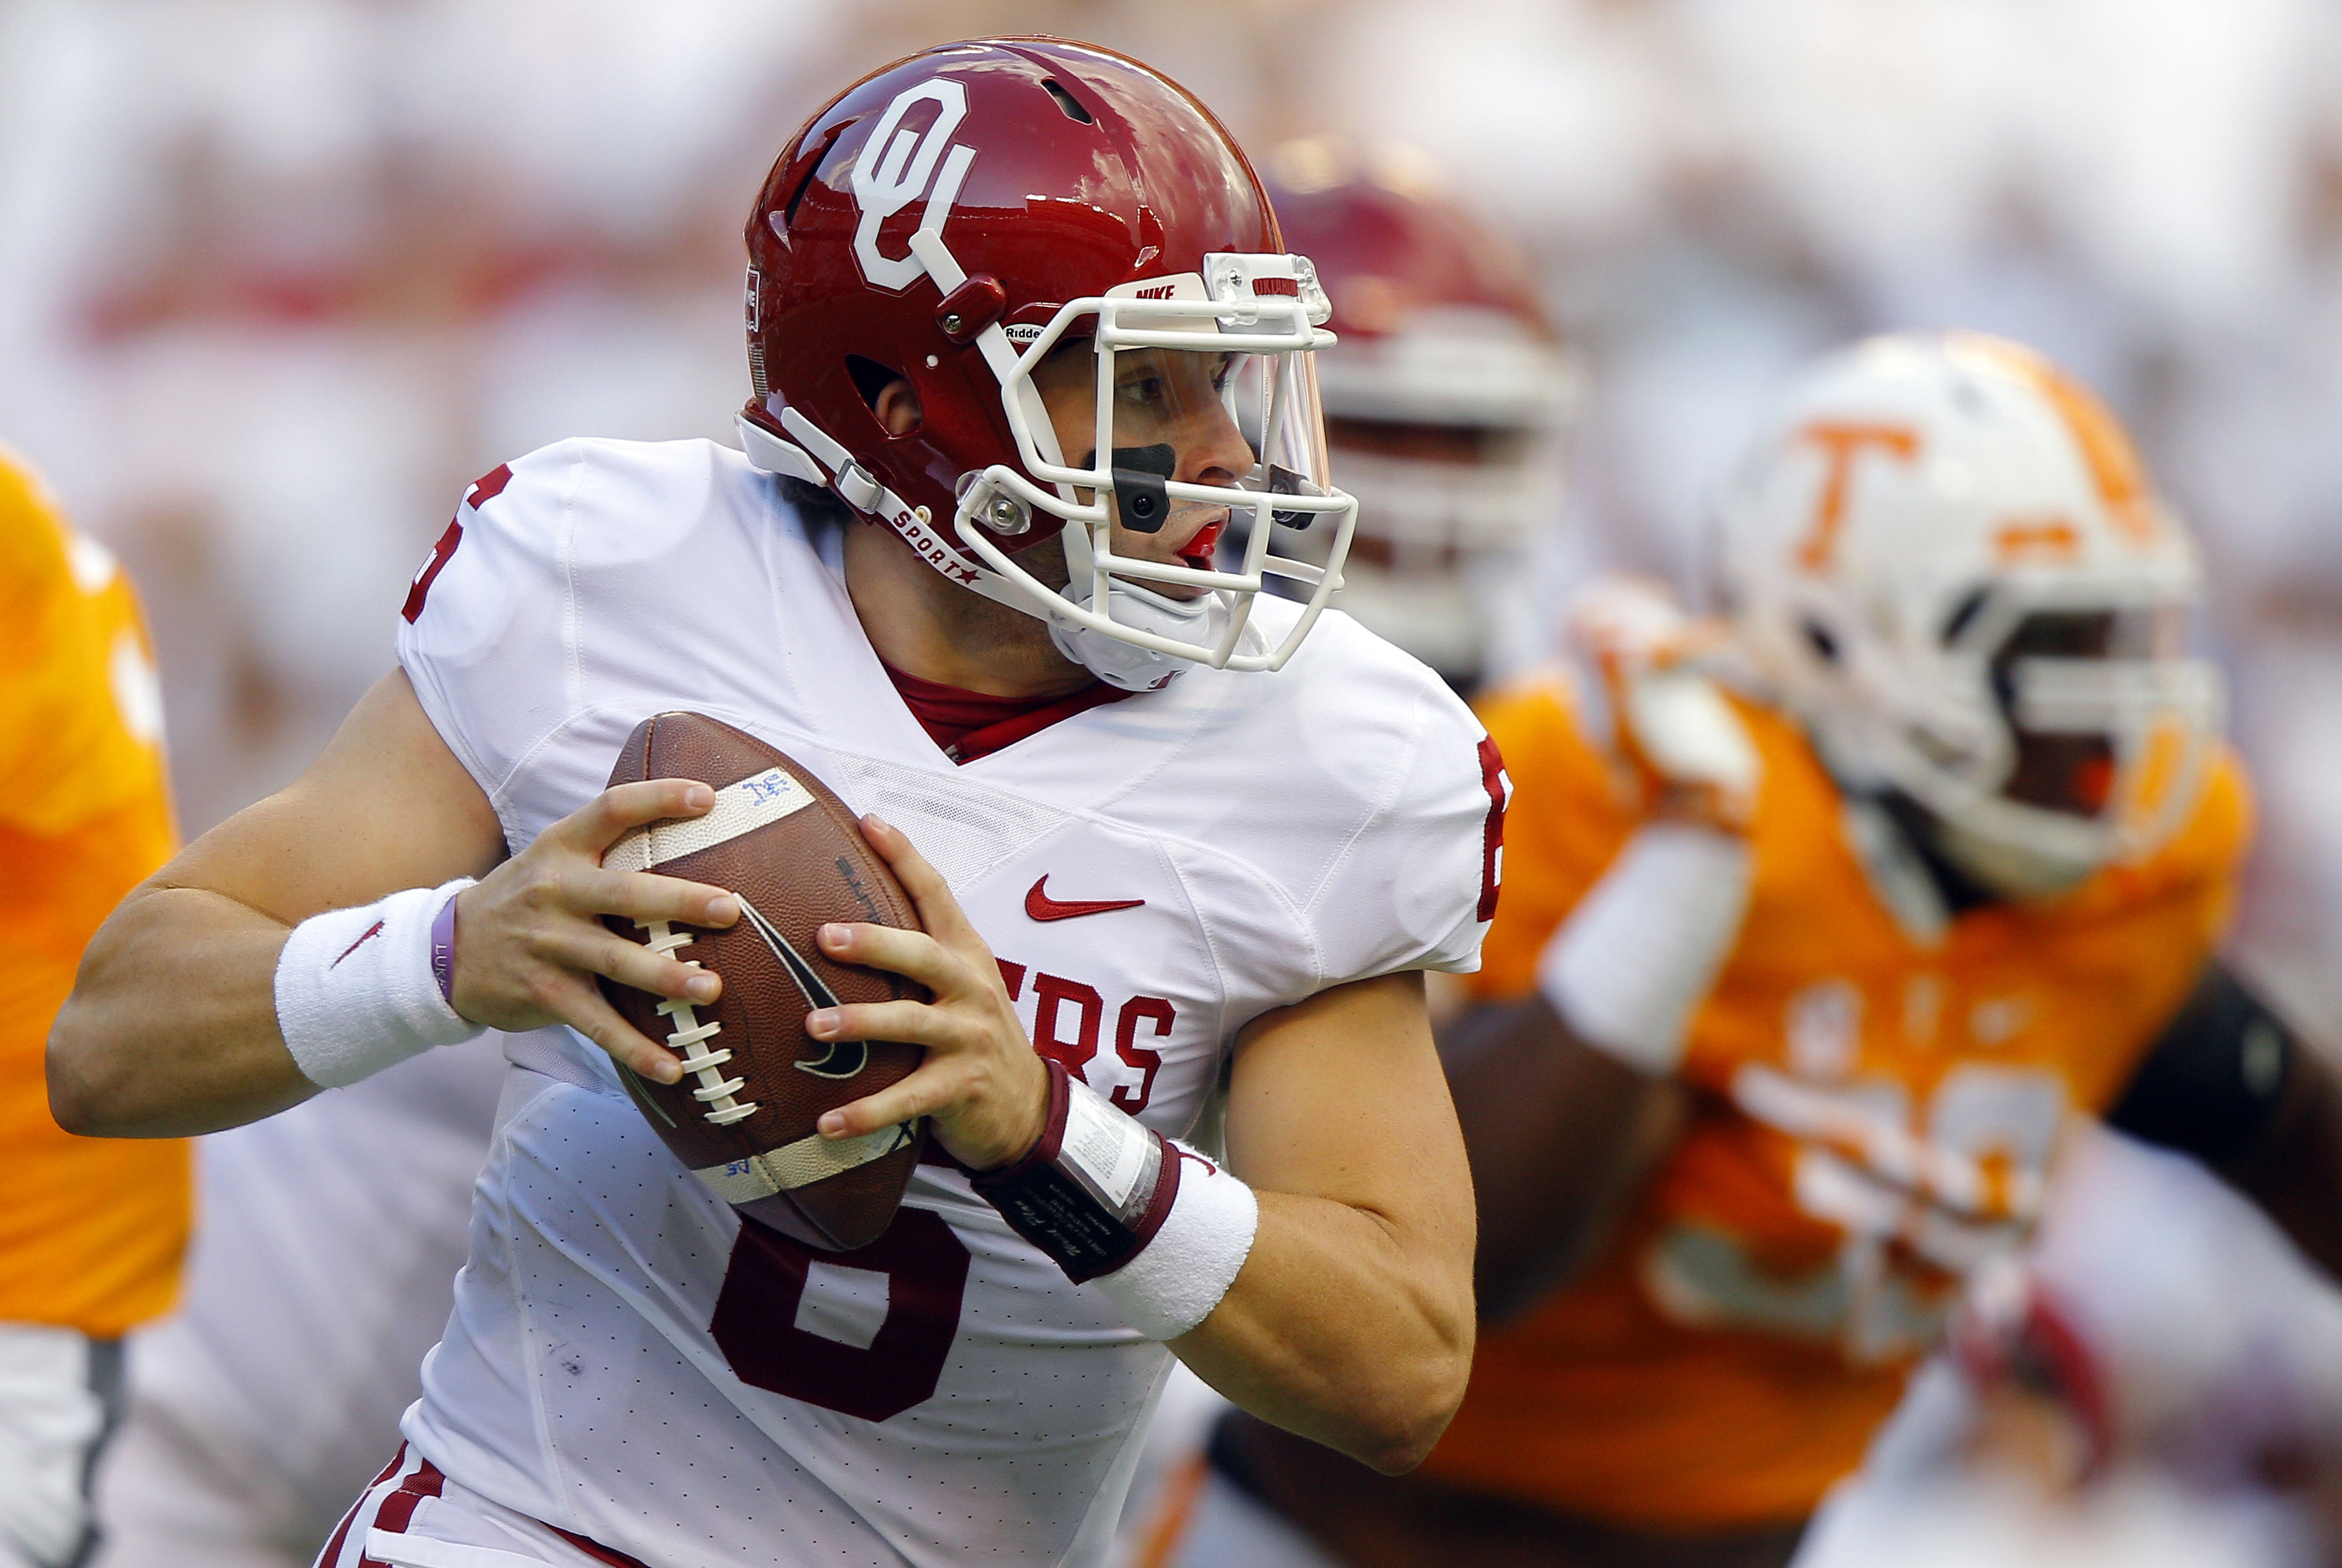 FILE - In this Saturday, Sept. 12, 2015, file photo, Oklahoma quarterback Baker Mayfield (6) runs for yardage during the first half of an NCAA college football game against Tennessee in Knoxville, Tenn. For years, Mayfield dreamed of creating dramatic vic